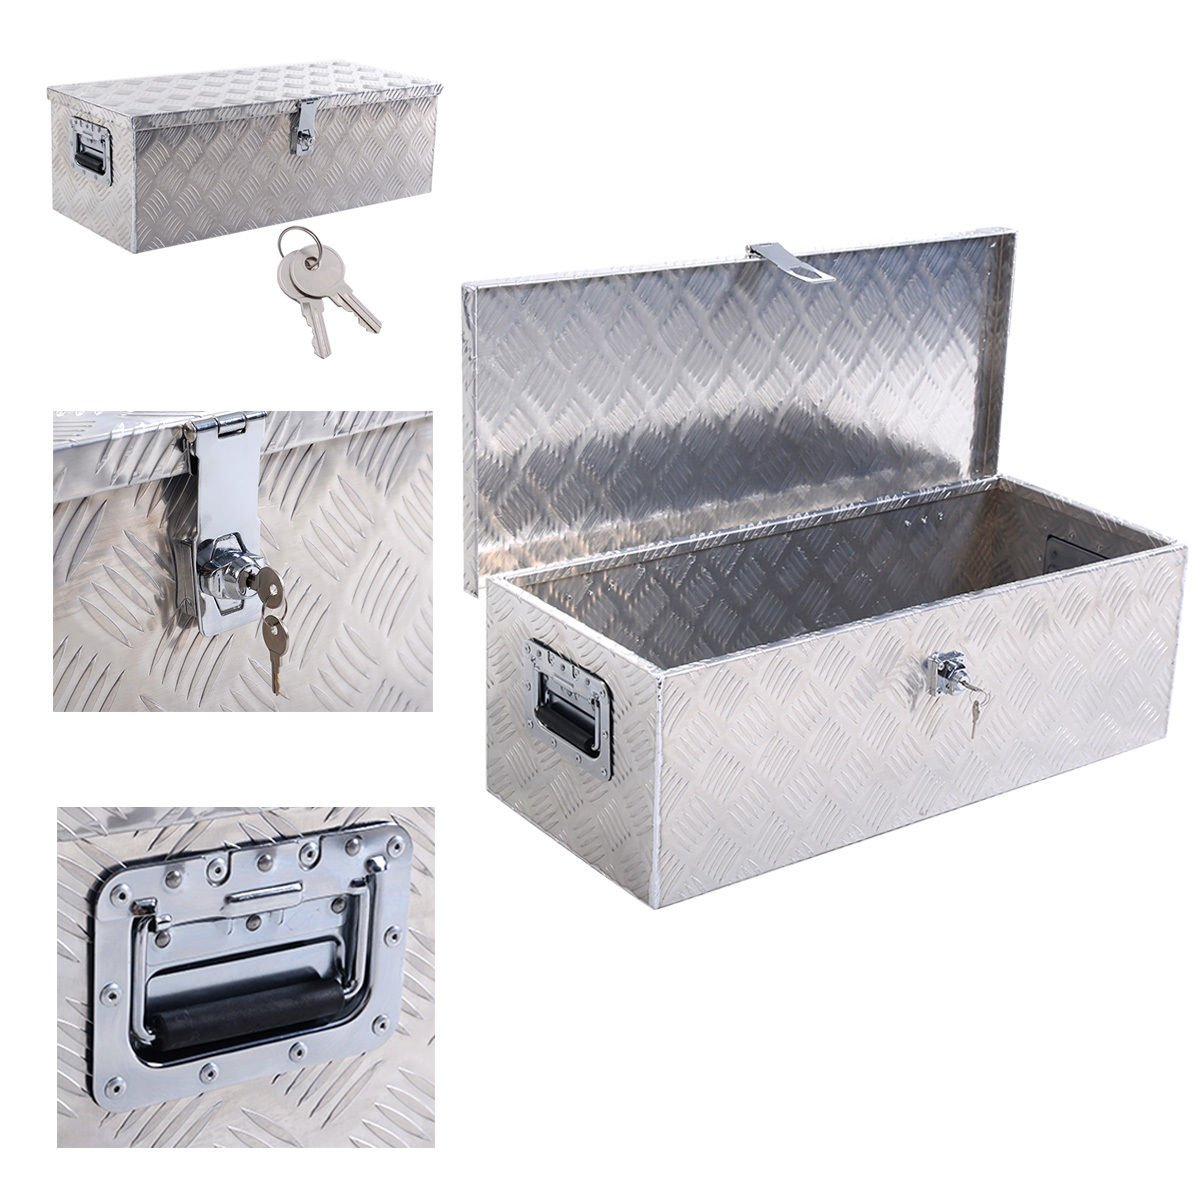 30''L Aluminum Truck Pickup Bed Trailer ATV Tongue Lockable Tool Box W/ Lock Bonus free ebook By Allgoodsdelight365